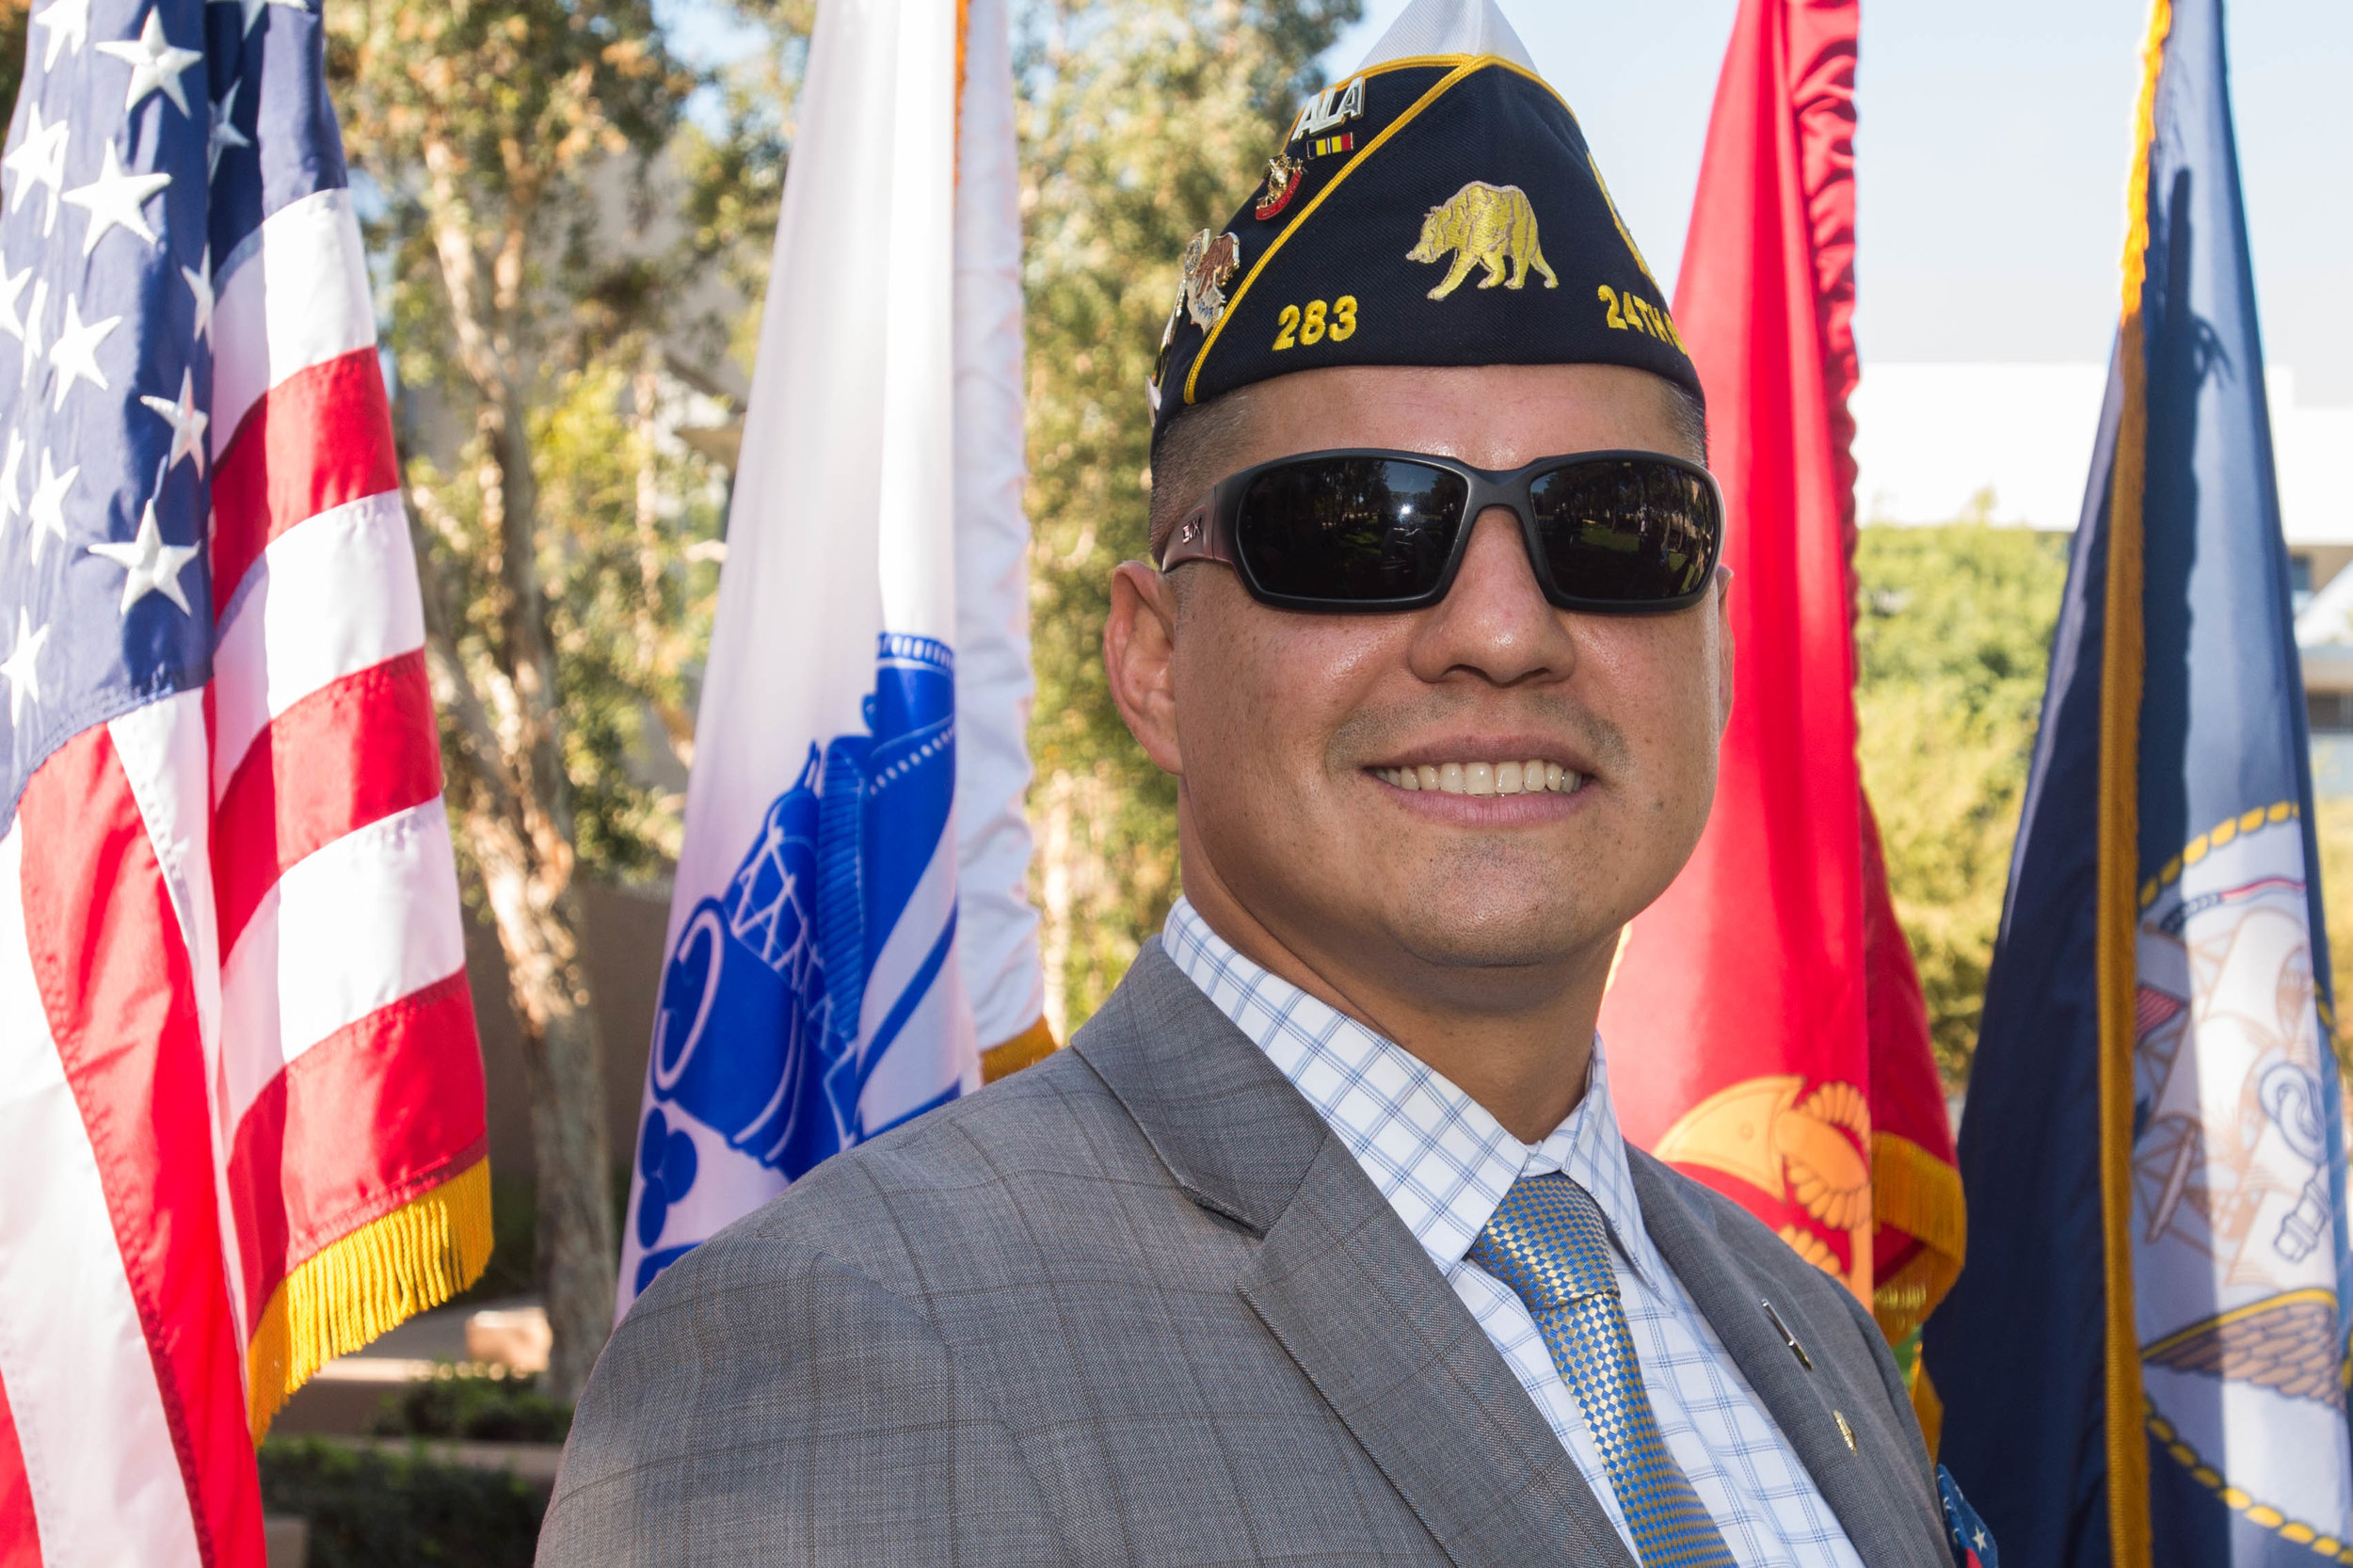 """Noe Aguirre, current Santa Monica College student veteran speaker at the """"Honoring Veterans from Veterans"""" event, poses for a portrait in the Santa Monica Main Campus quad located in Santa Monica College in Santa Monica, Calif.  Veteran Sergeant Aguirre served in the Marine Corps from 2007-2013 he was deployed to Iraq and Afghanistan during his time. """"Veterans are too busy trying to fit into the norm, but we aren't normal anymore"""" stated Veteran Sergeant Aguirre.  Photo by: Rosangelica Vizcarra"""